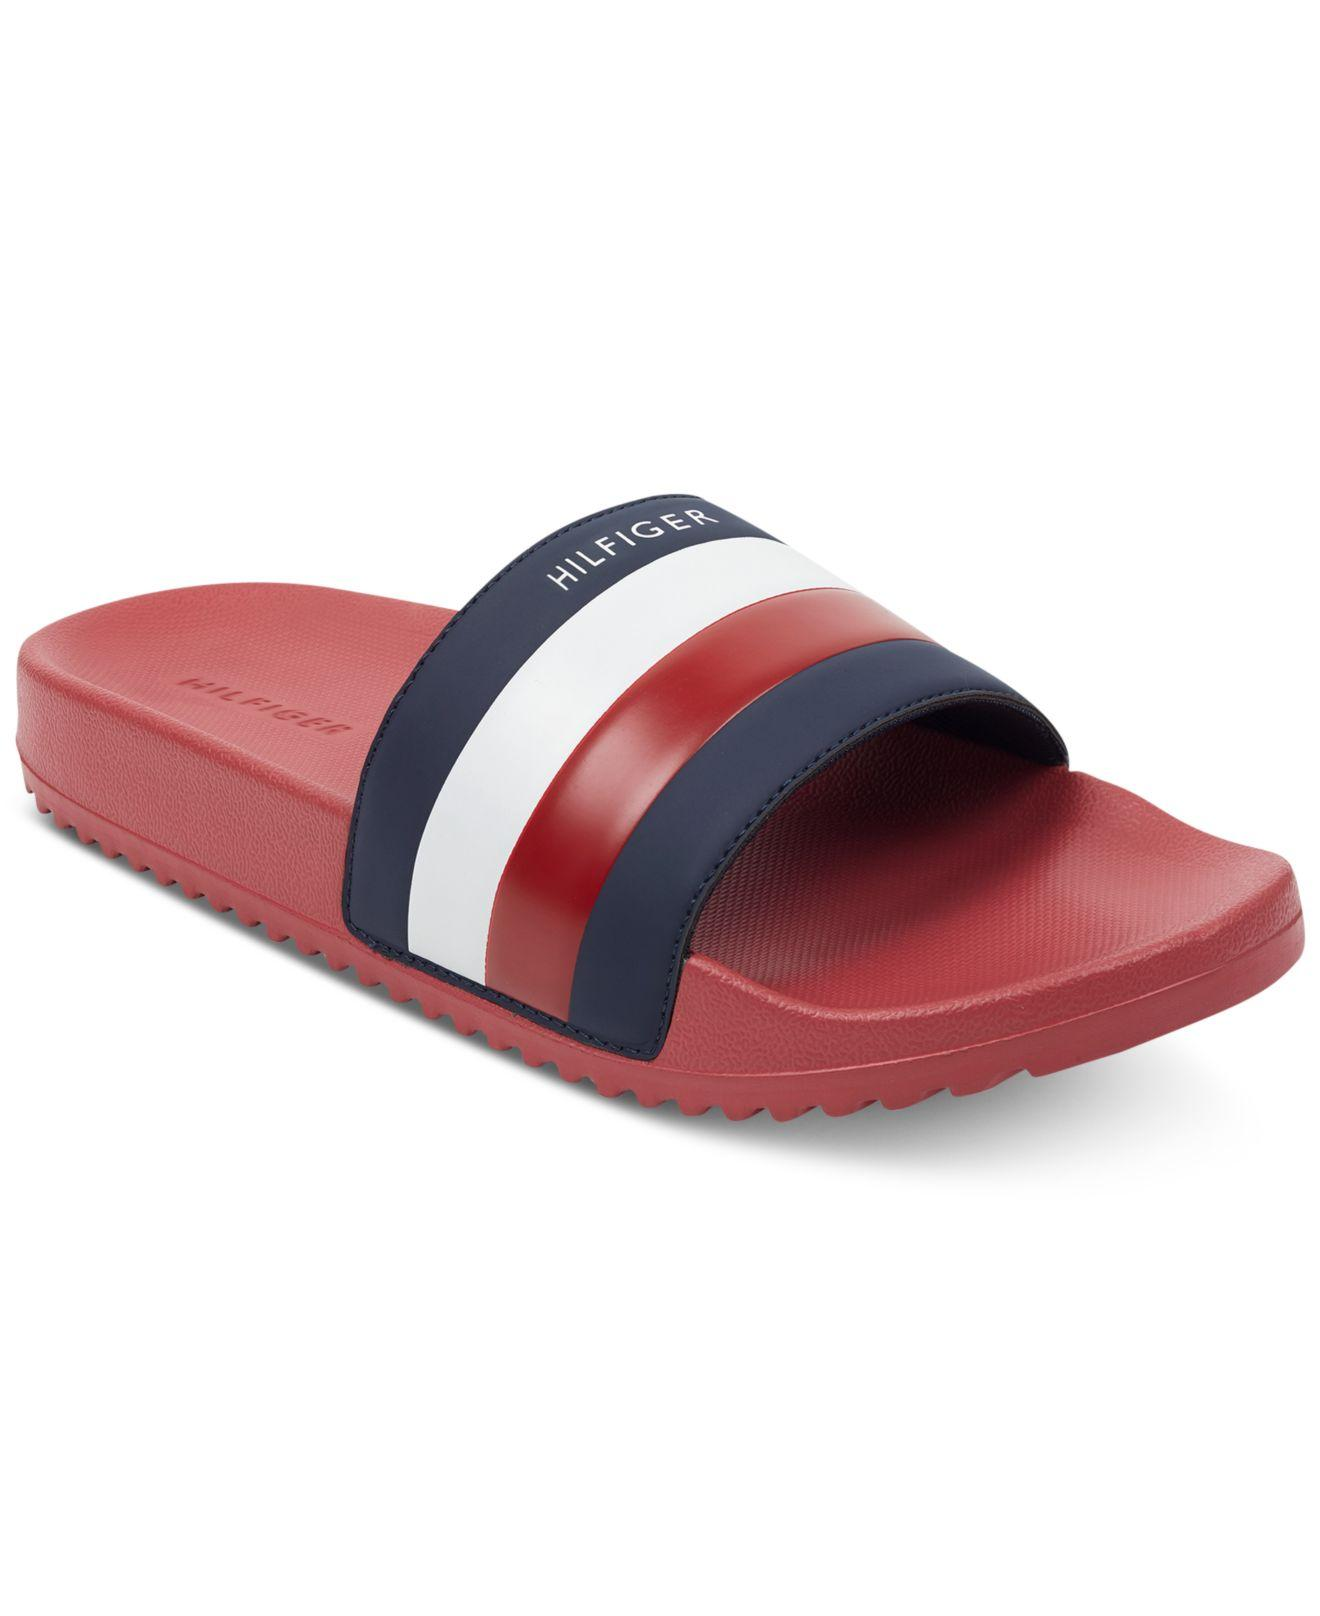 46dacde1b Lyst - Tommy Hilfiger Rox Slide Sandals in Red for Men